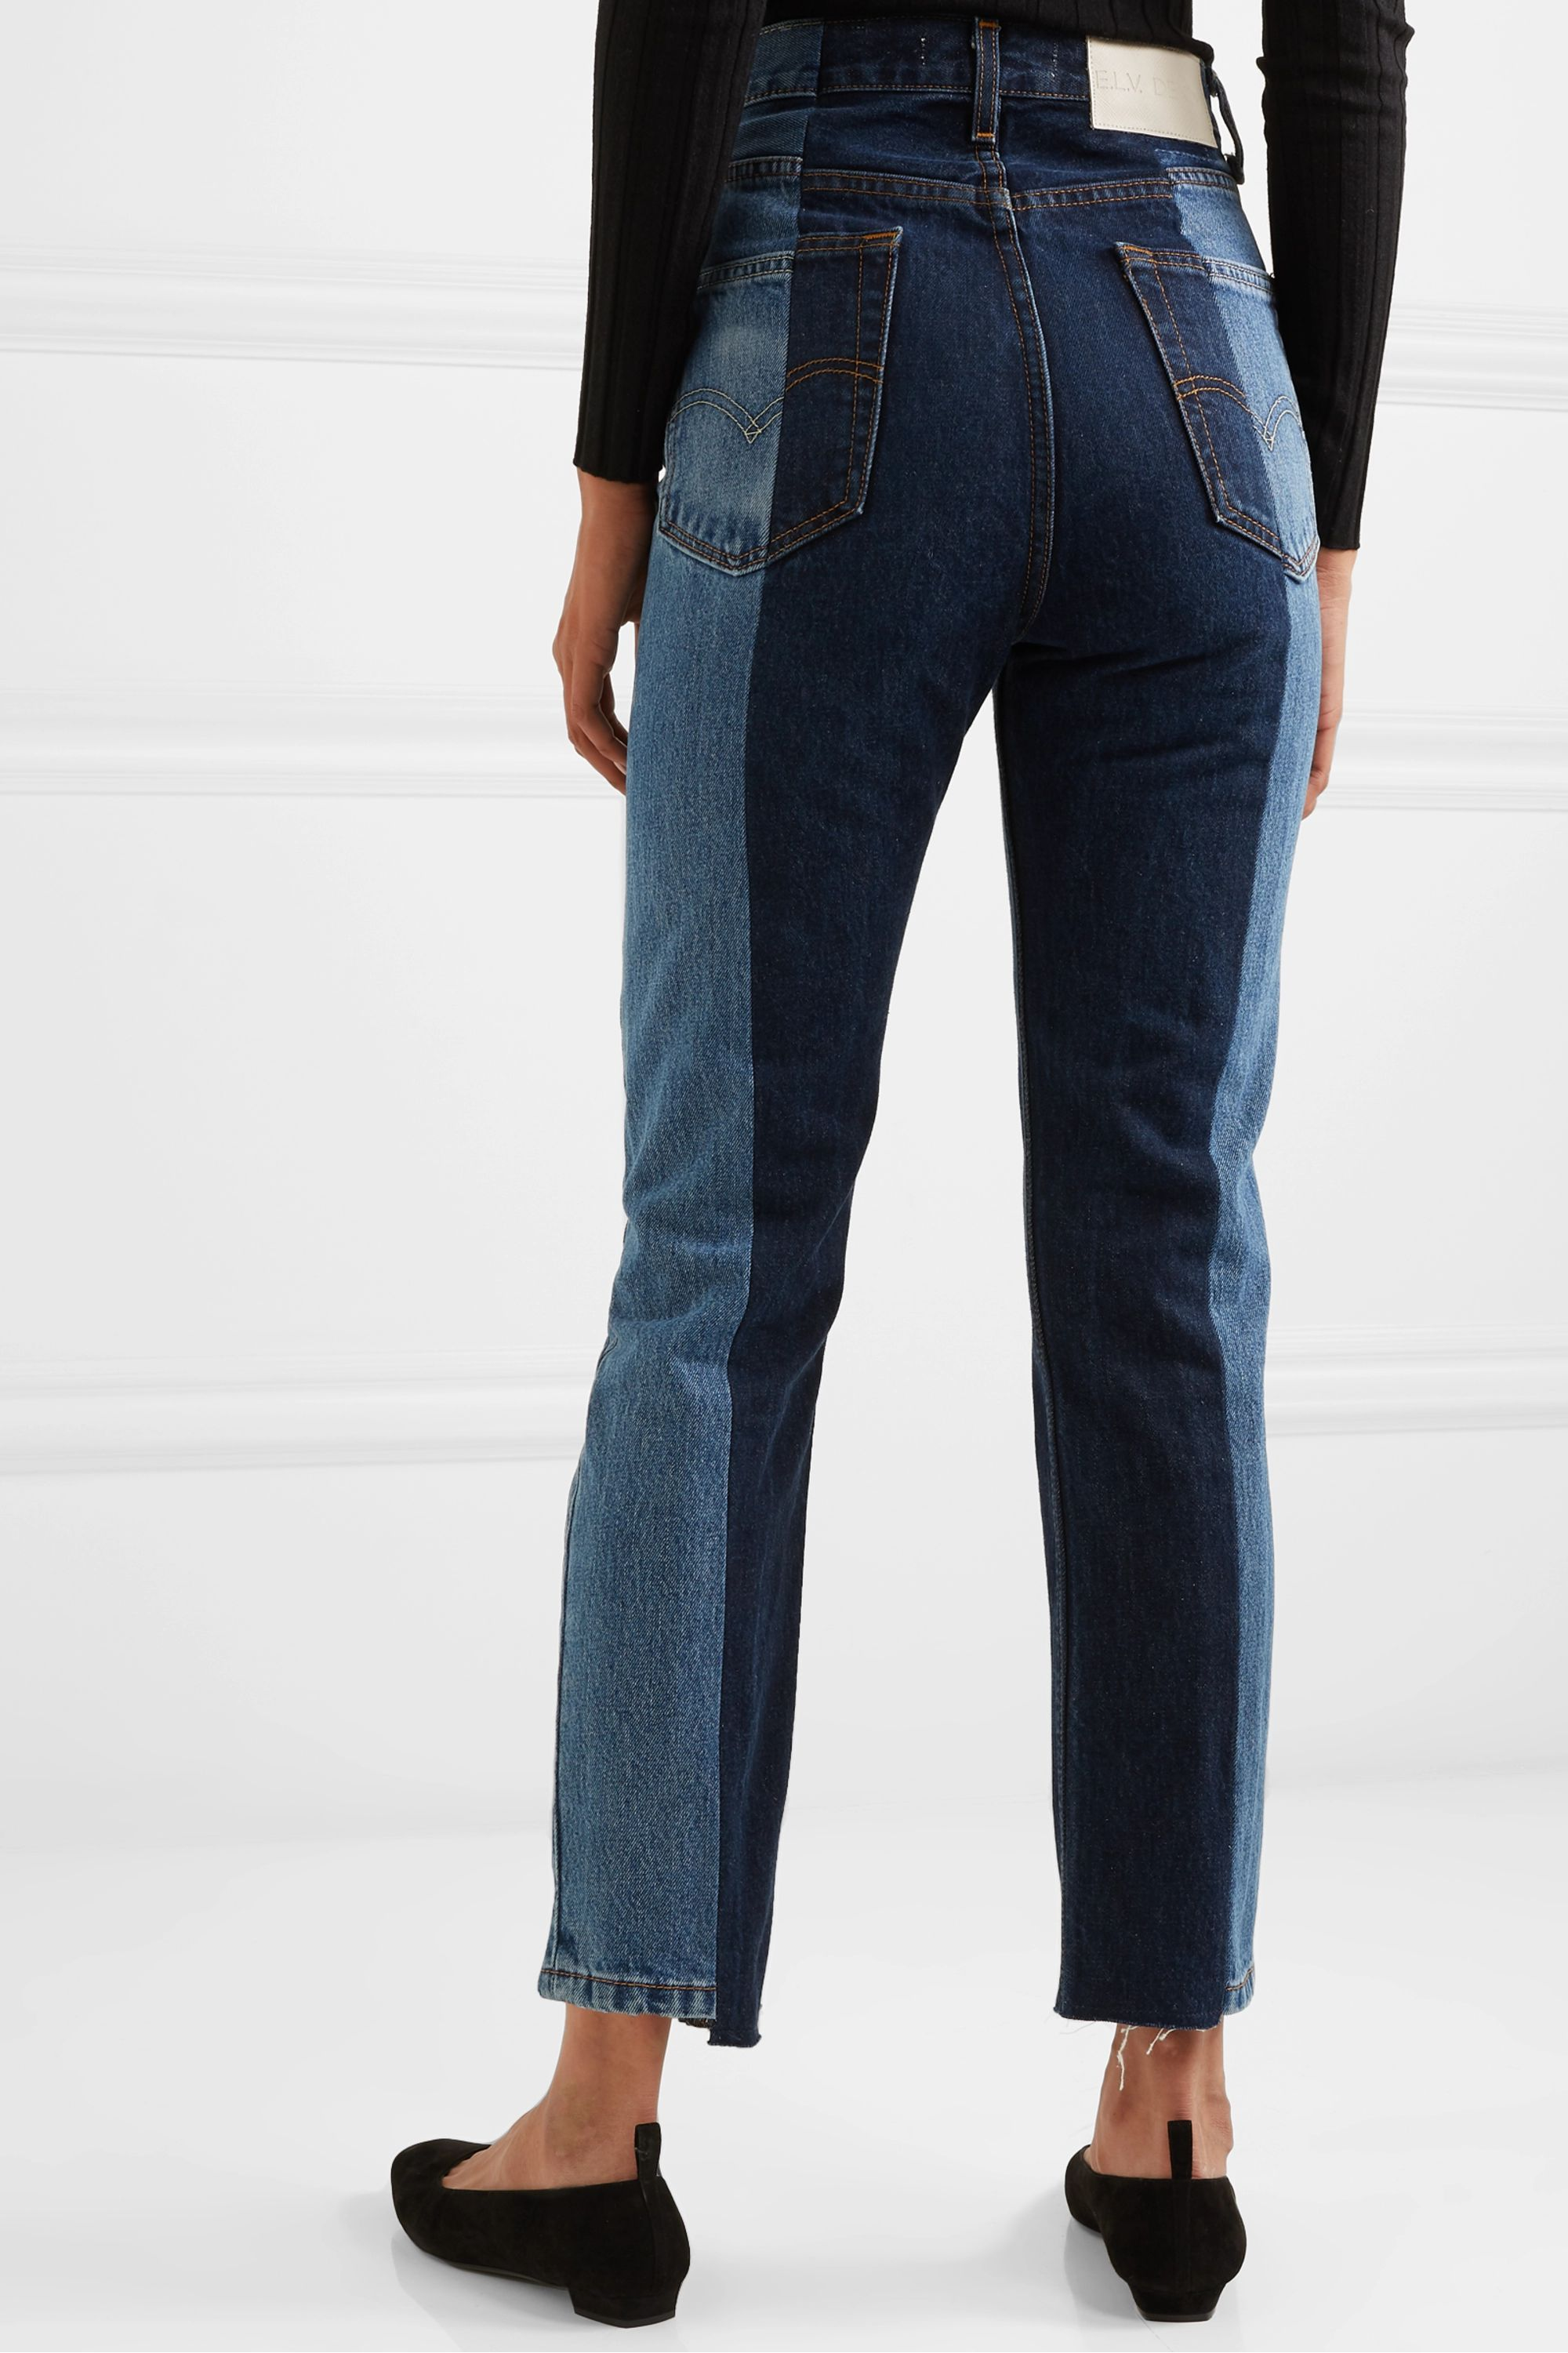 E.L.V. Denim + NET SUSTAIN The Twin frayed two-tone high-rise straight-leg jeans